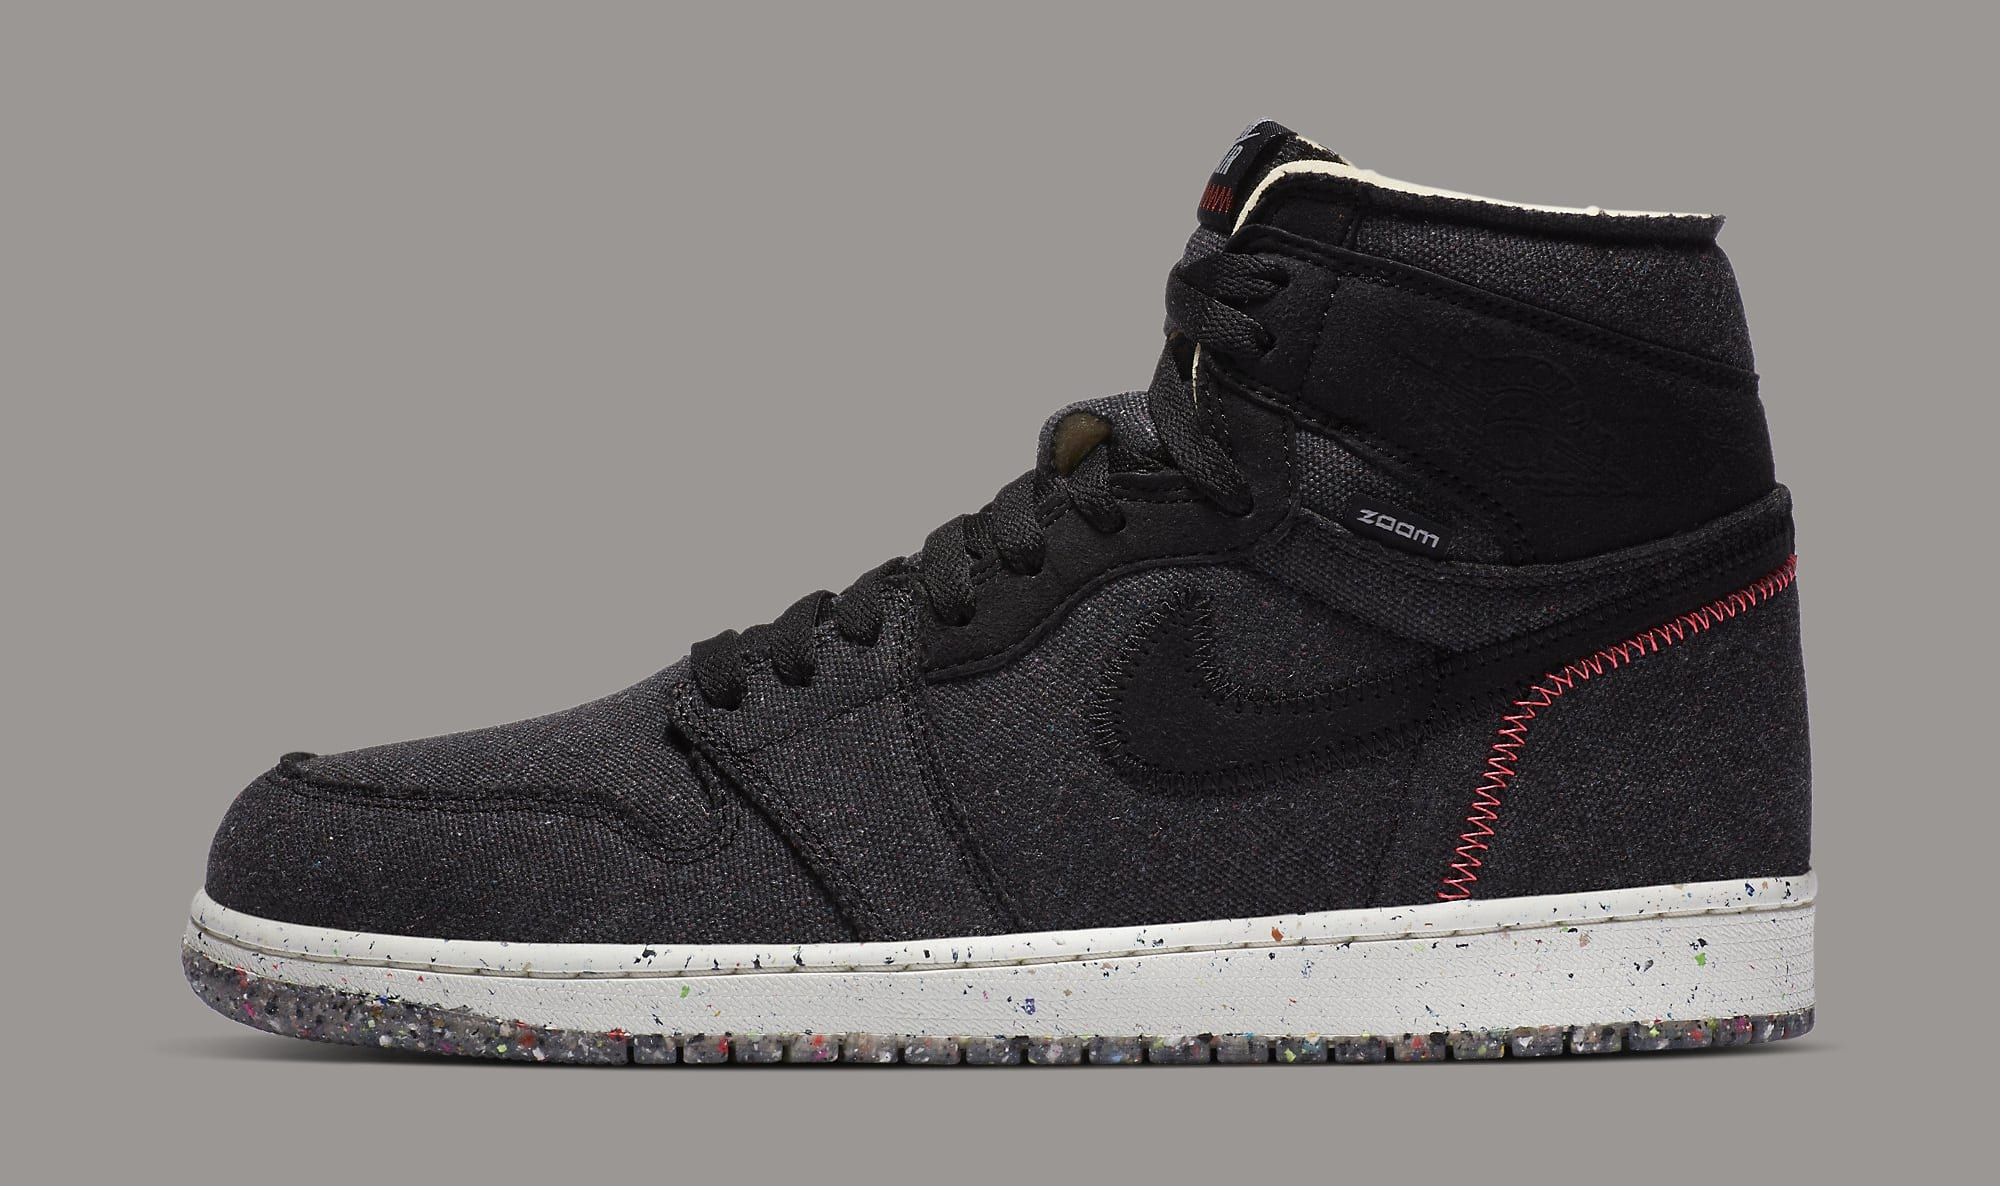 Air Jordan 1 High Zoom 'Crater' CW2414-001 Lateral